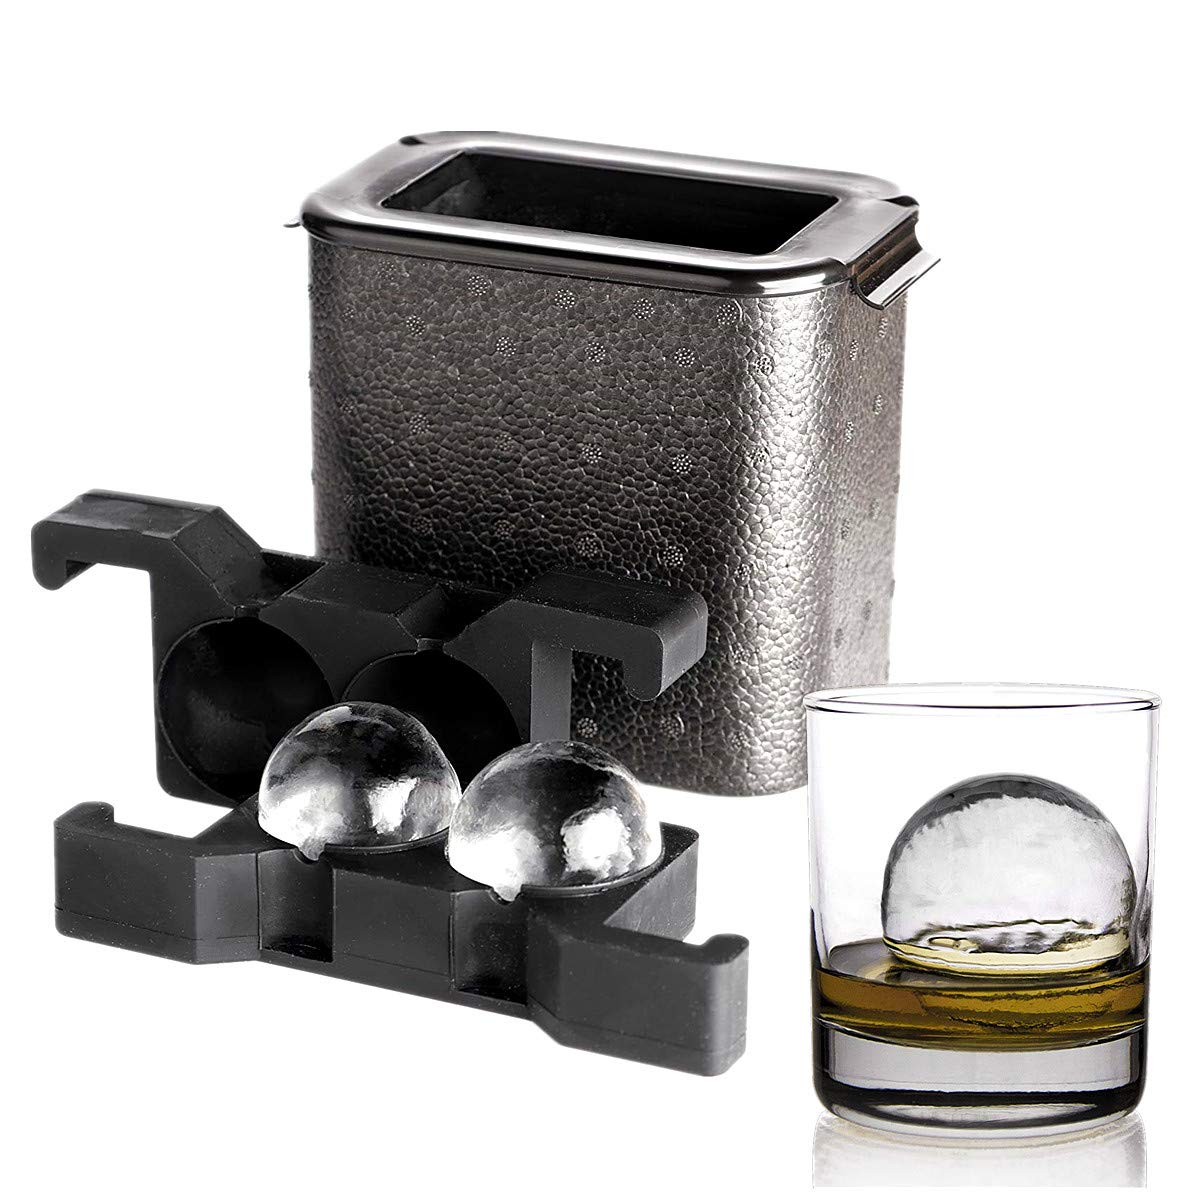 Crystal Clear Ice Ball Maker-glace boule sphérique whisky bac moule Maker